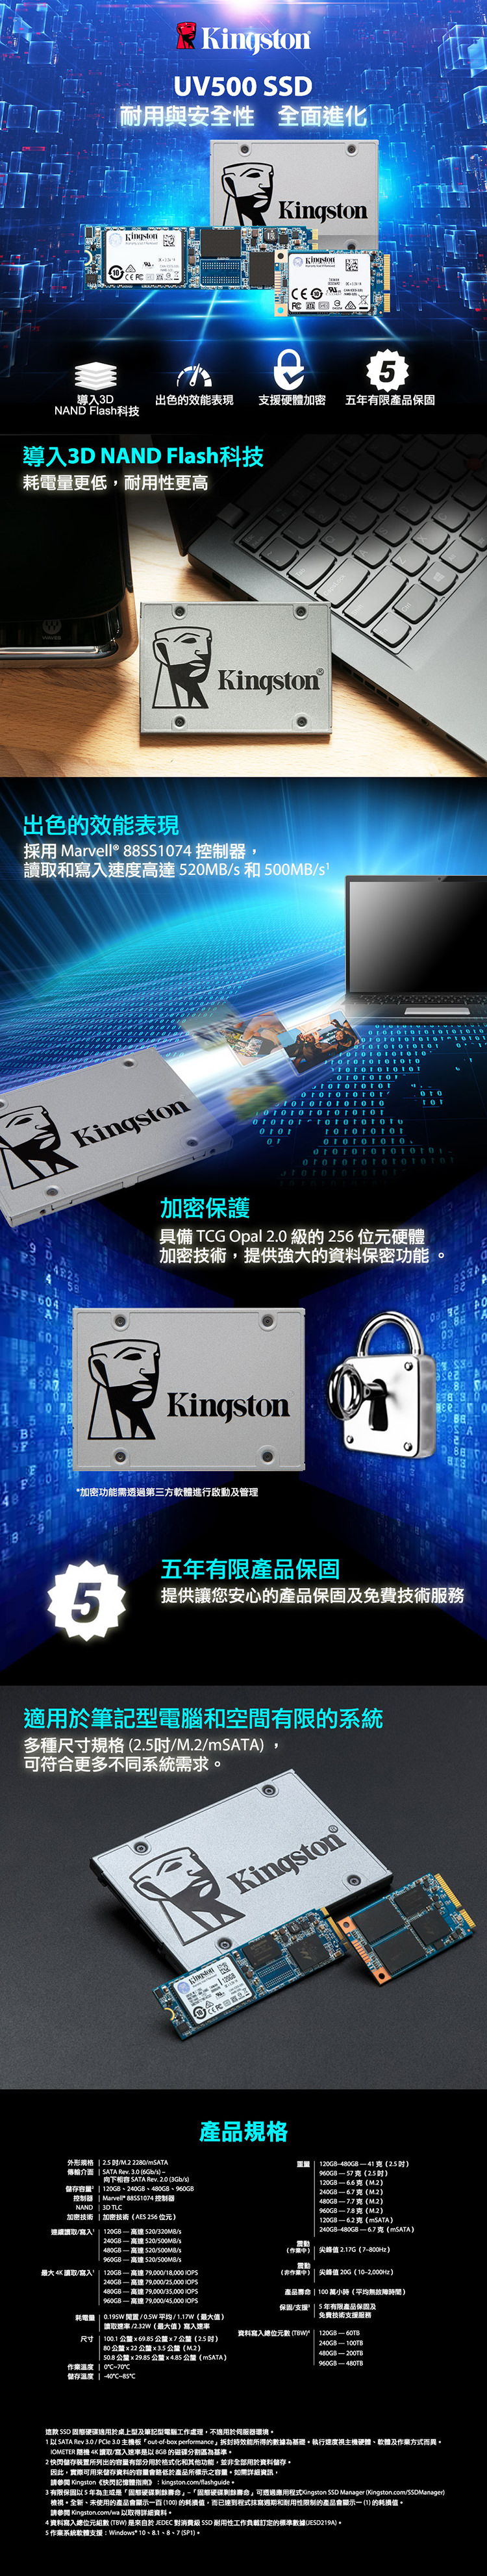 KingSton 金士頓 UV500 240GB